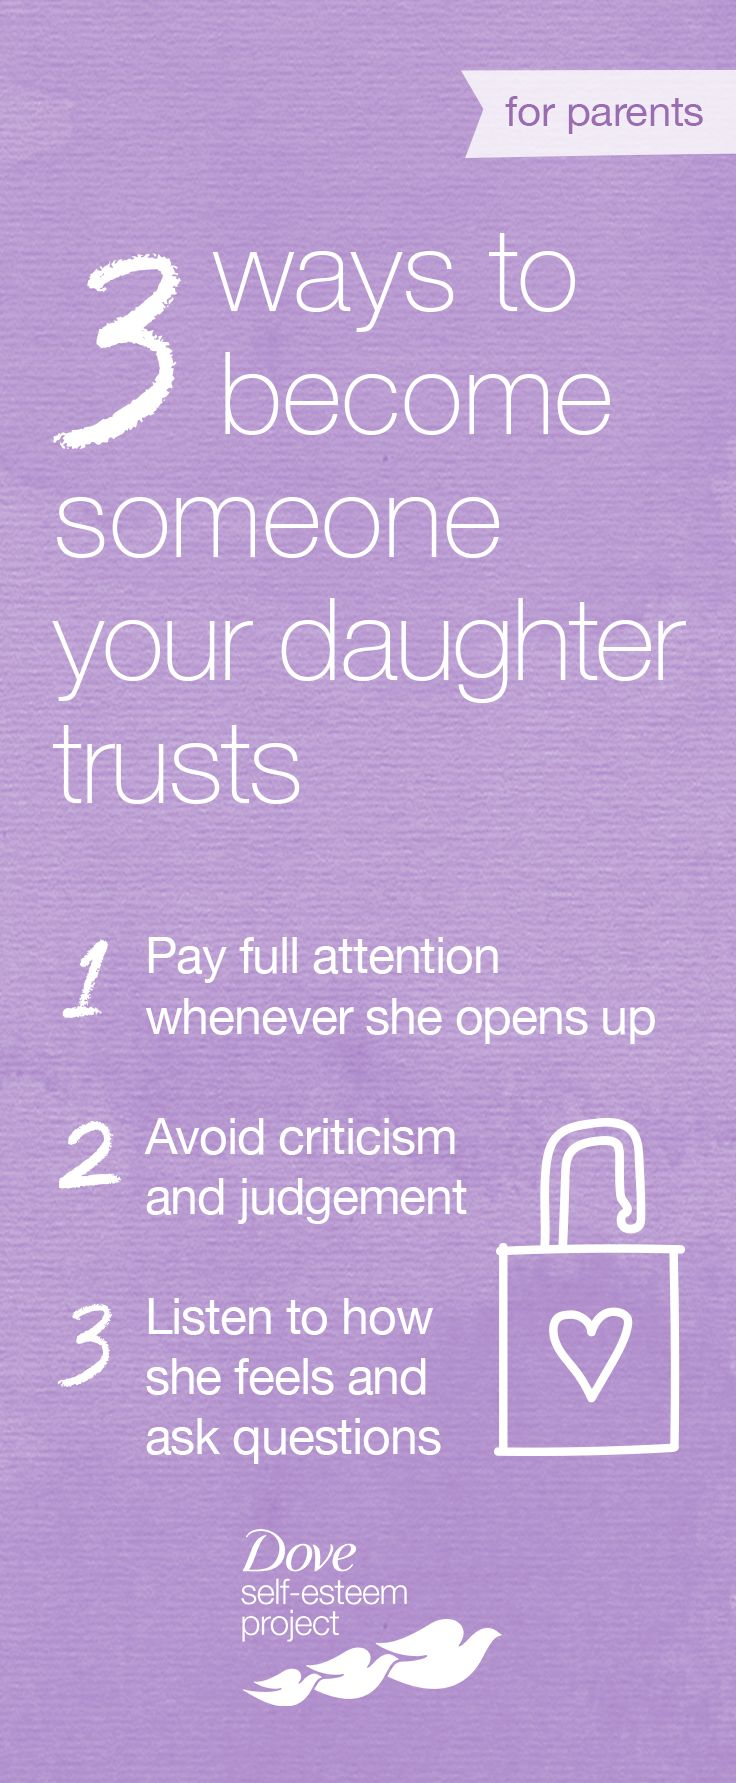 When your daughter opens up about her life, that's your window of opportunity to understand what really goes on in her world each day. What can close that window? Criticism, judgment and disapproval. Make it easy for her to open up to you and help ensure that your daughter sees you as a trusted advisor should she face a problem. For more info—head to www.pinterest.com/selfesteem. #SelfEsteemProject